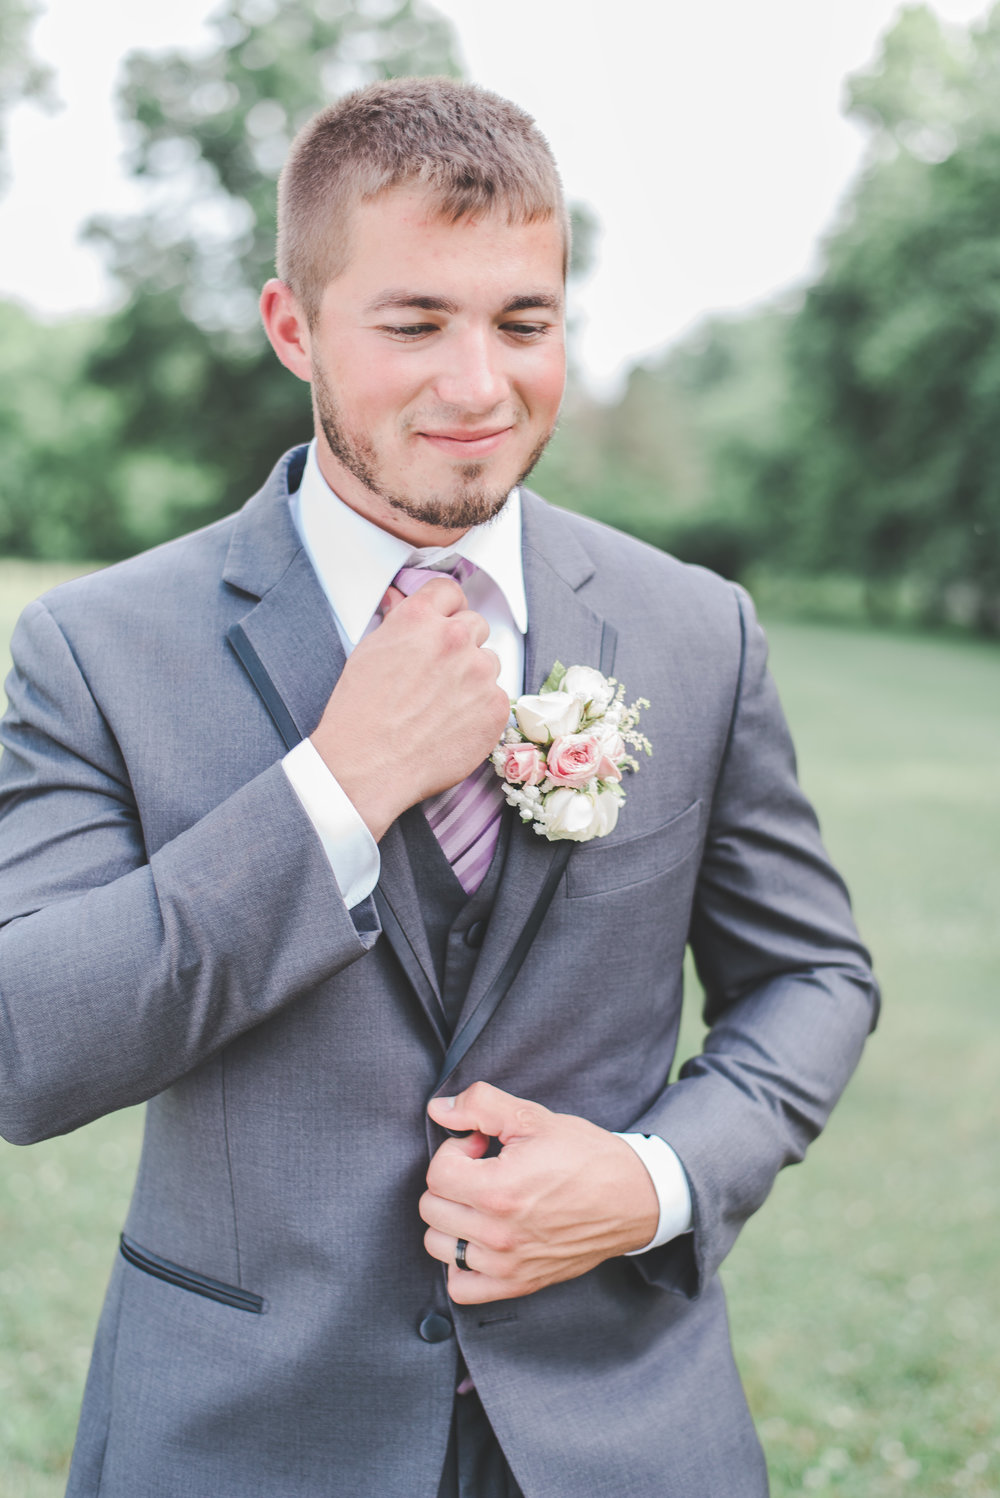 Groom Fixing Tie